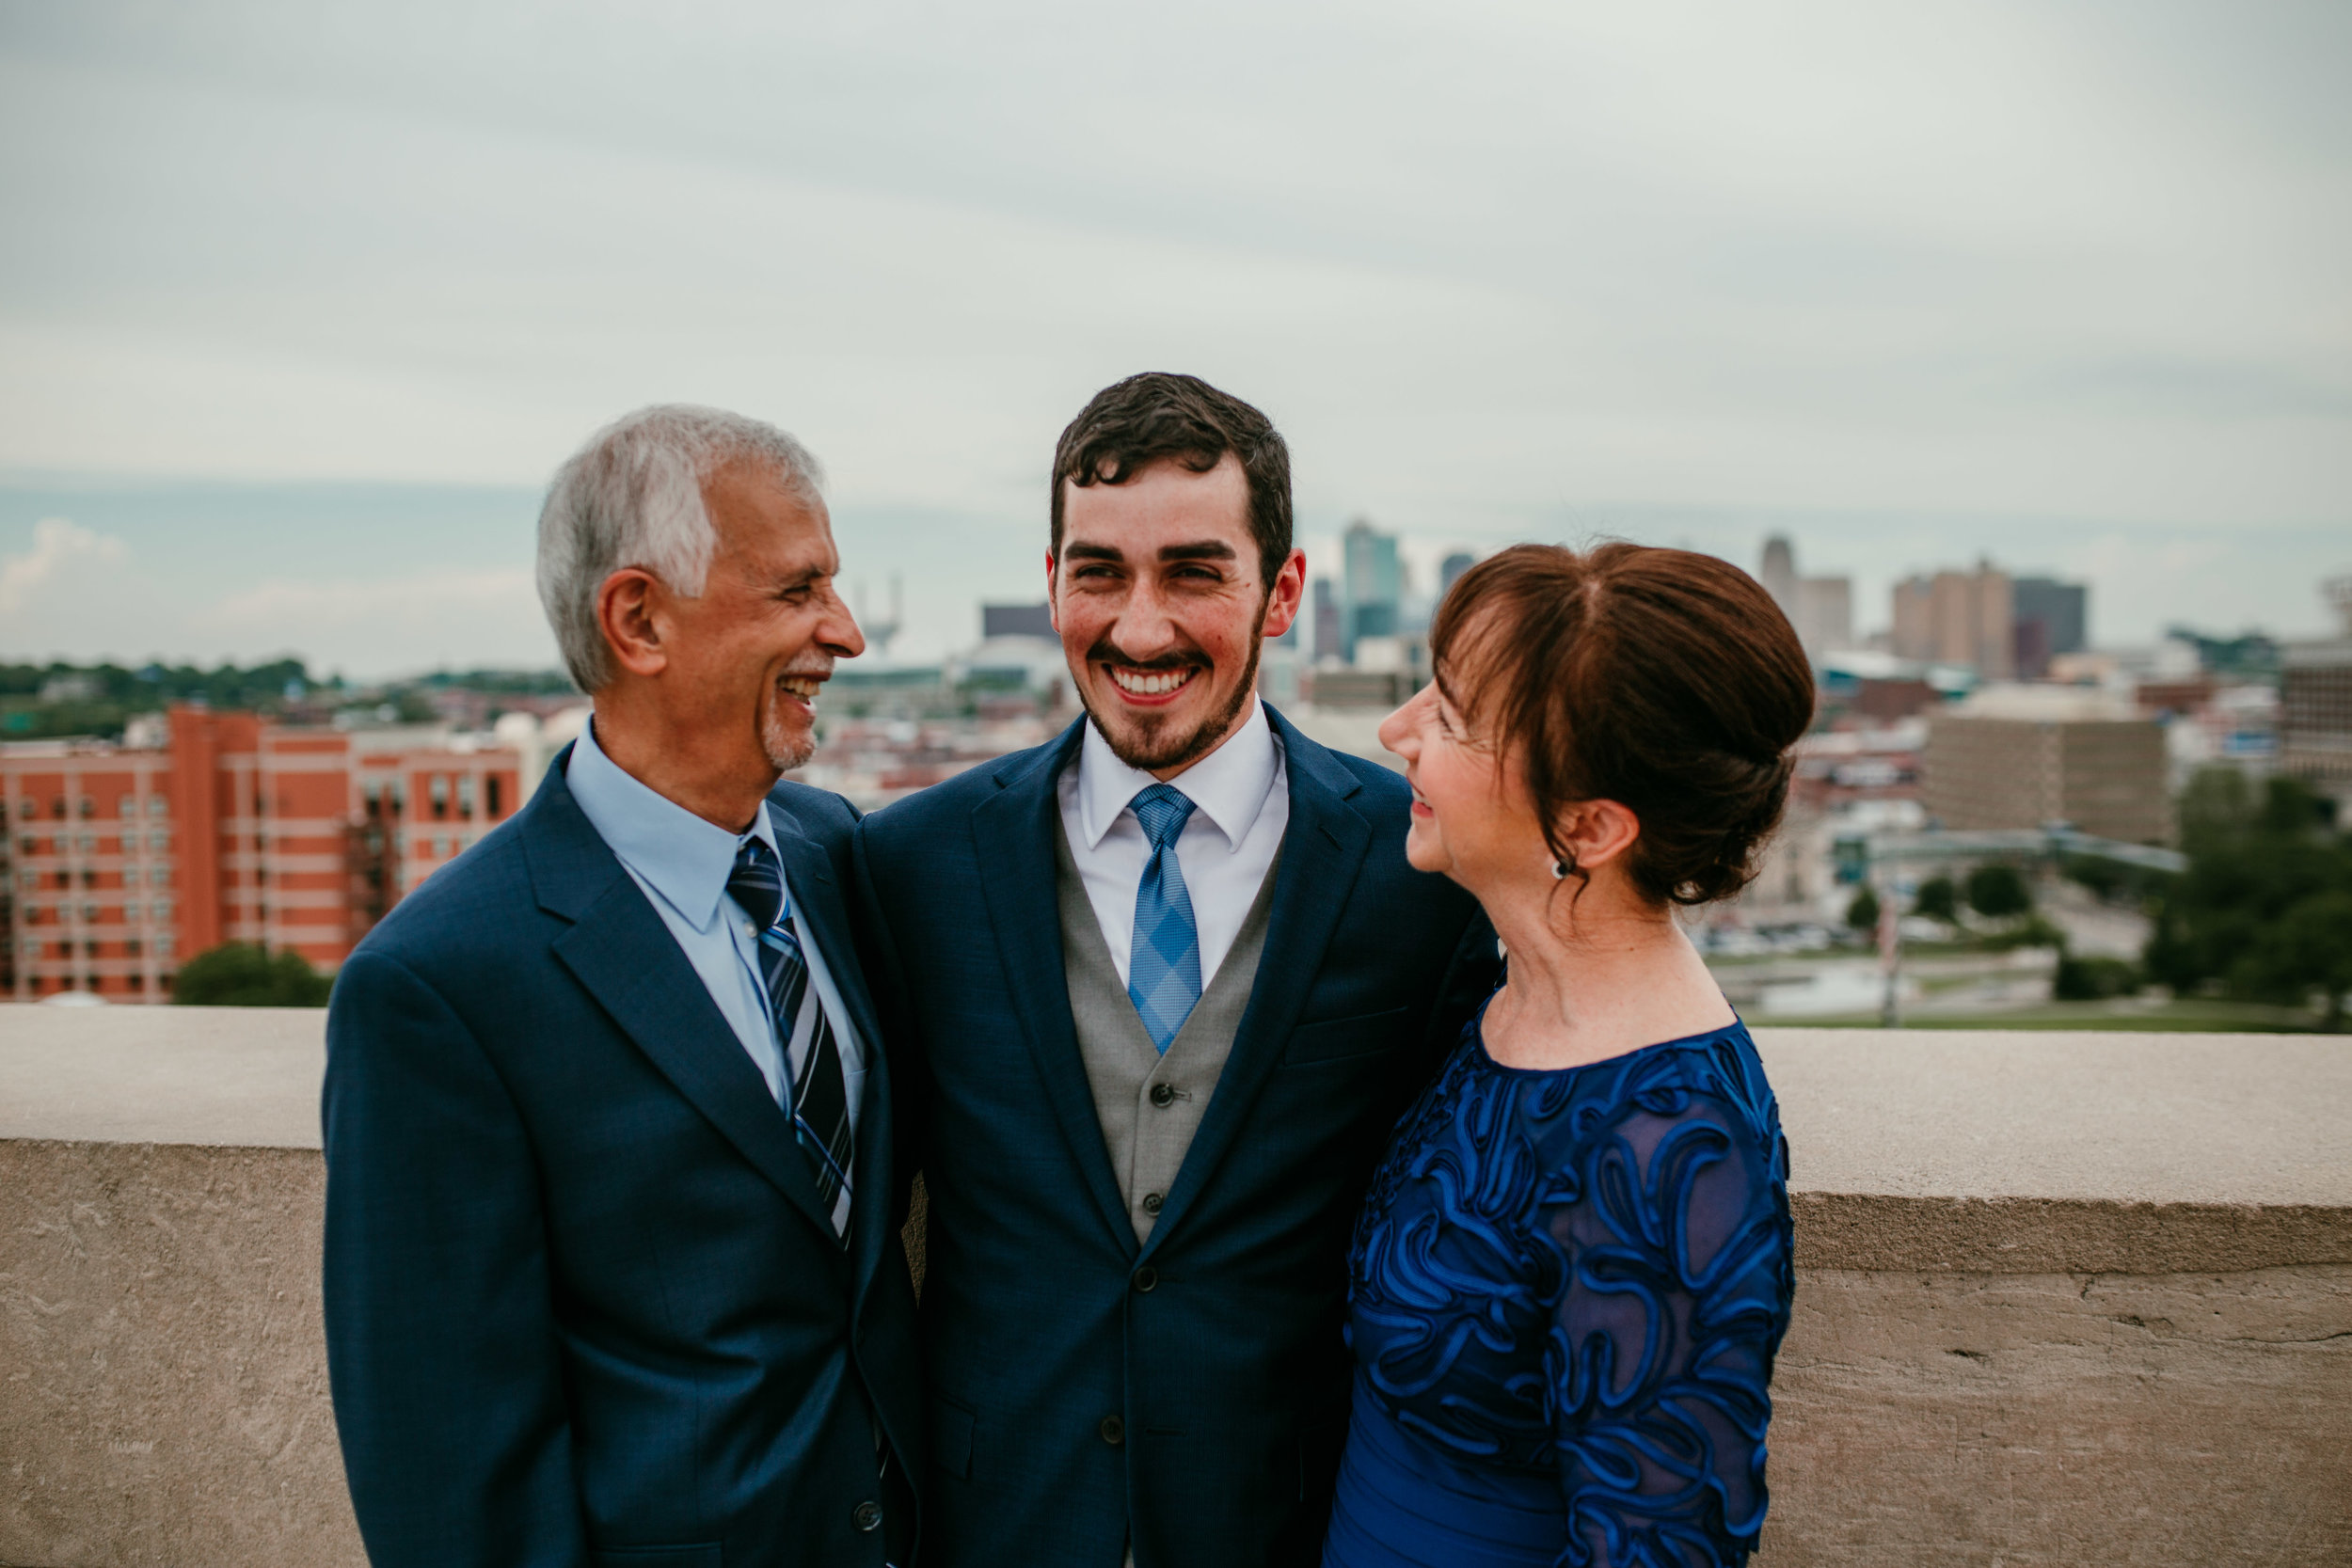 Family portraits at Liberty Memorial Skyline Downtown Kansas City | Shelbie & Jospeh's Summer Love Story : Kansas City Wedding | Hanna Hill Photography